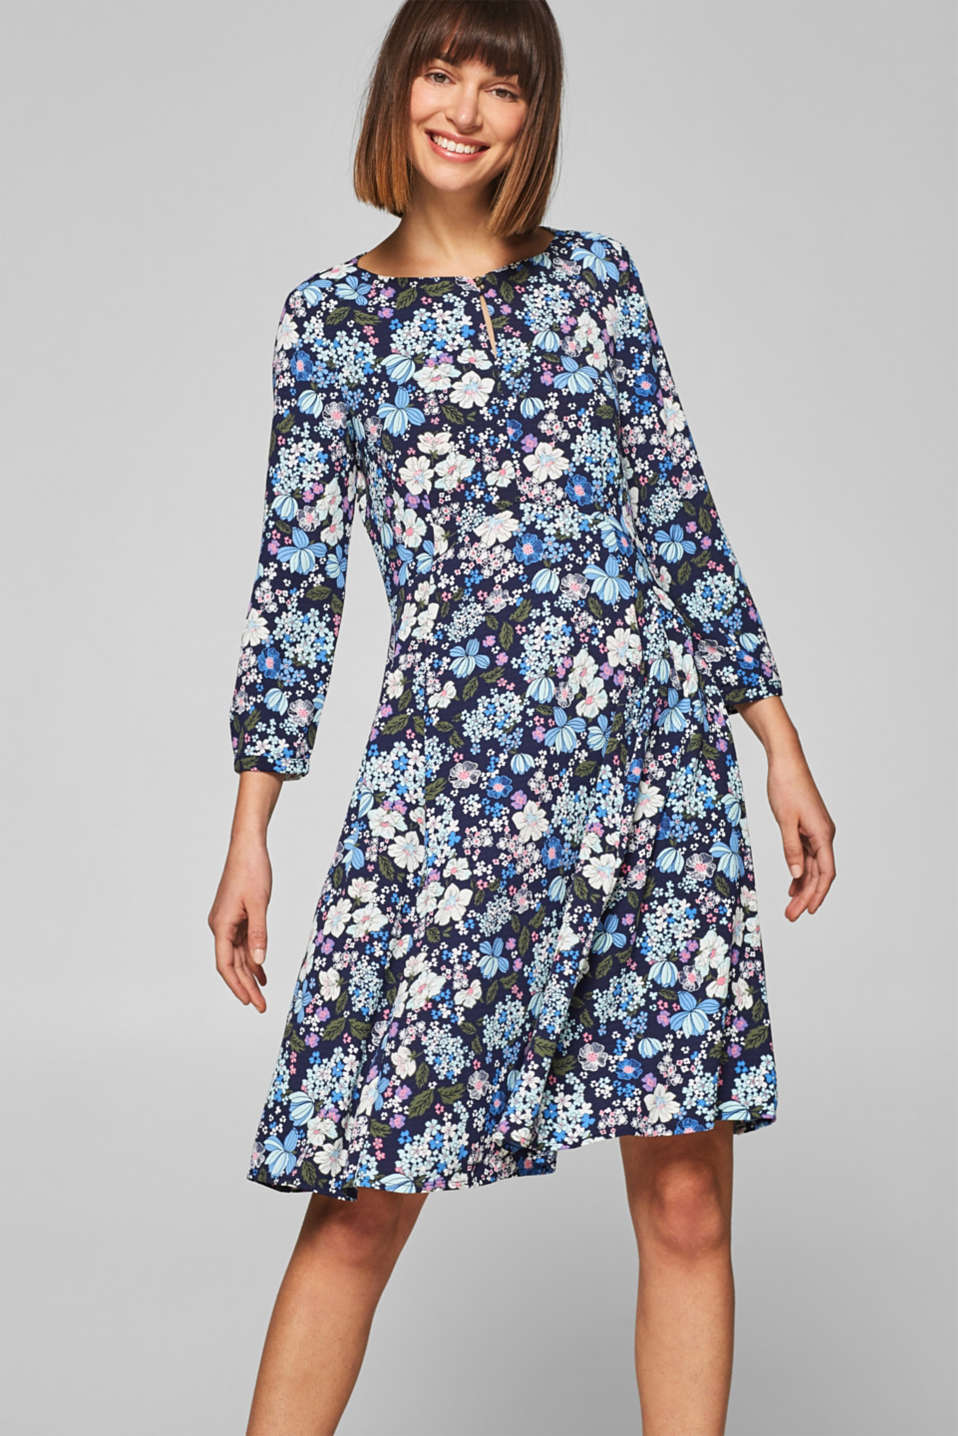 edc - Textured dress with a floral print